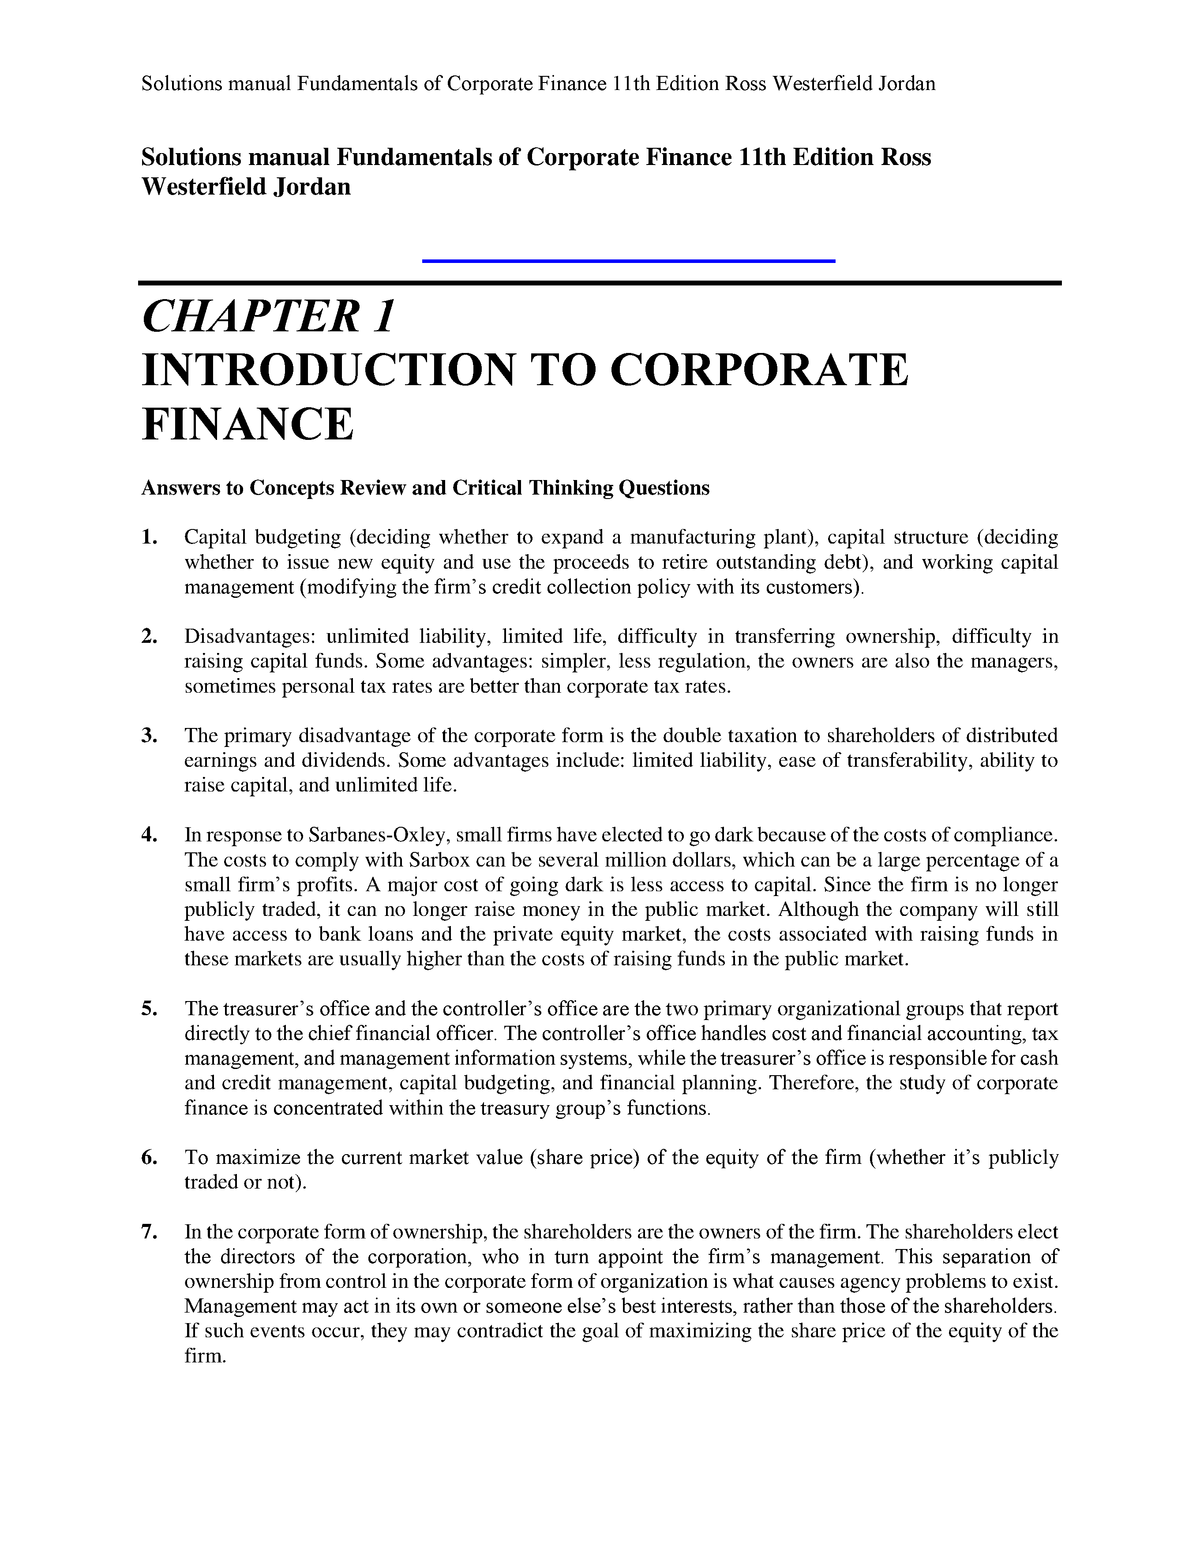 Fundamentals Of Corporate Finance 11th Edition Pdf Download